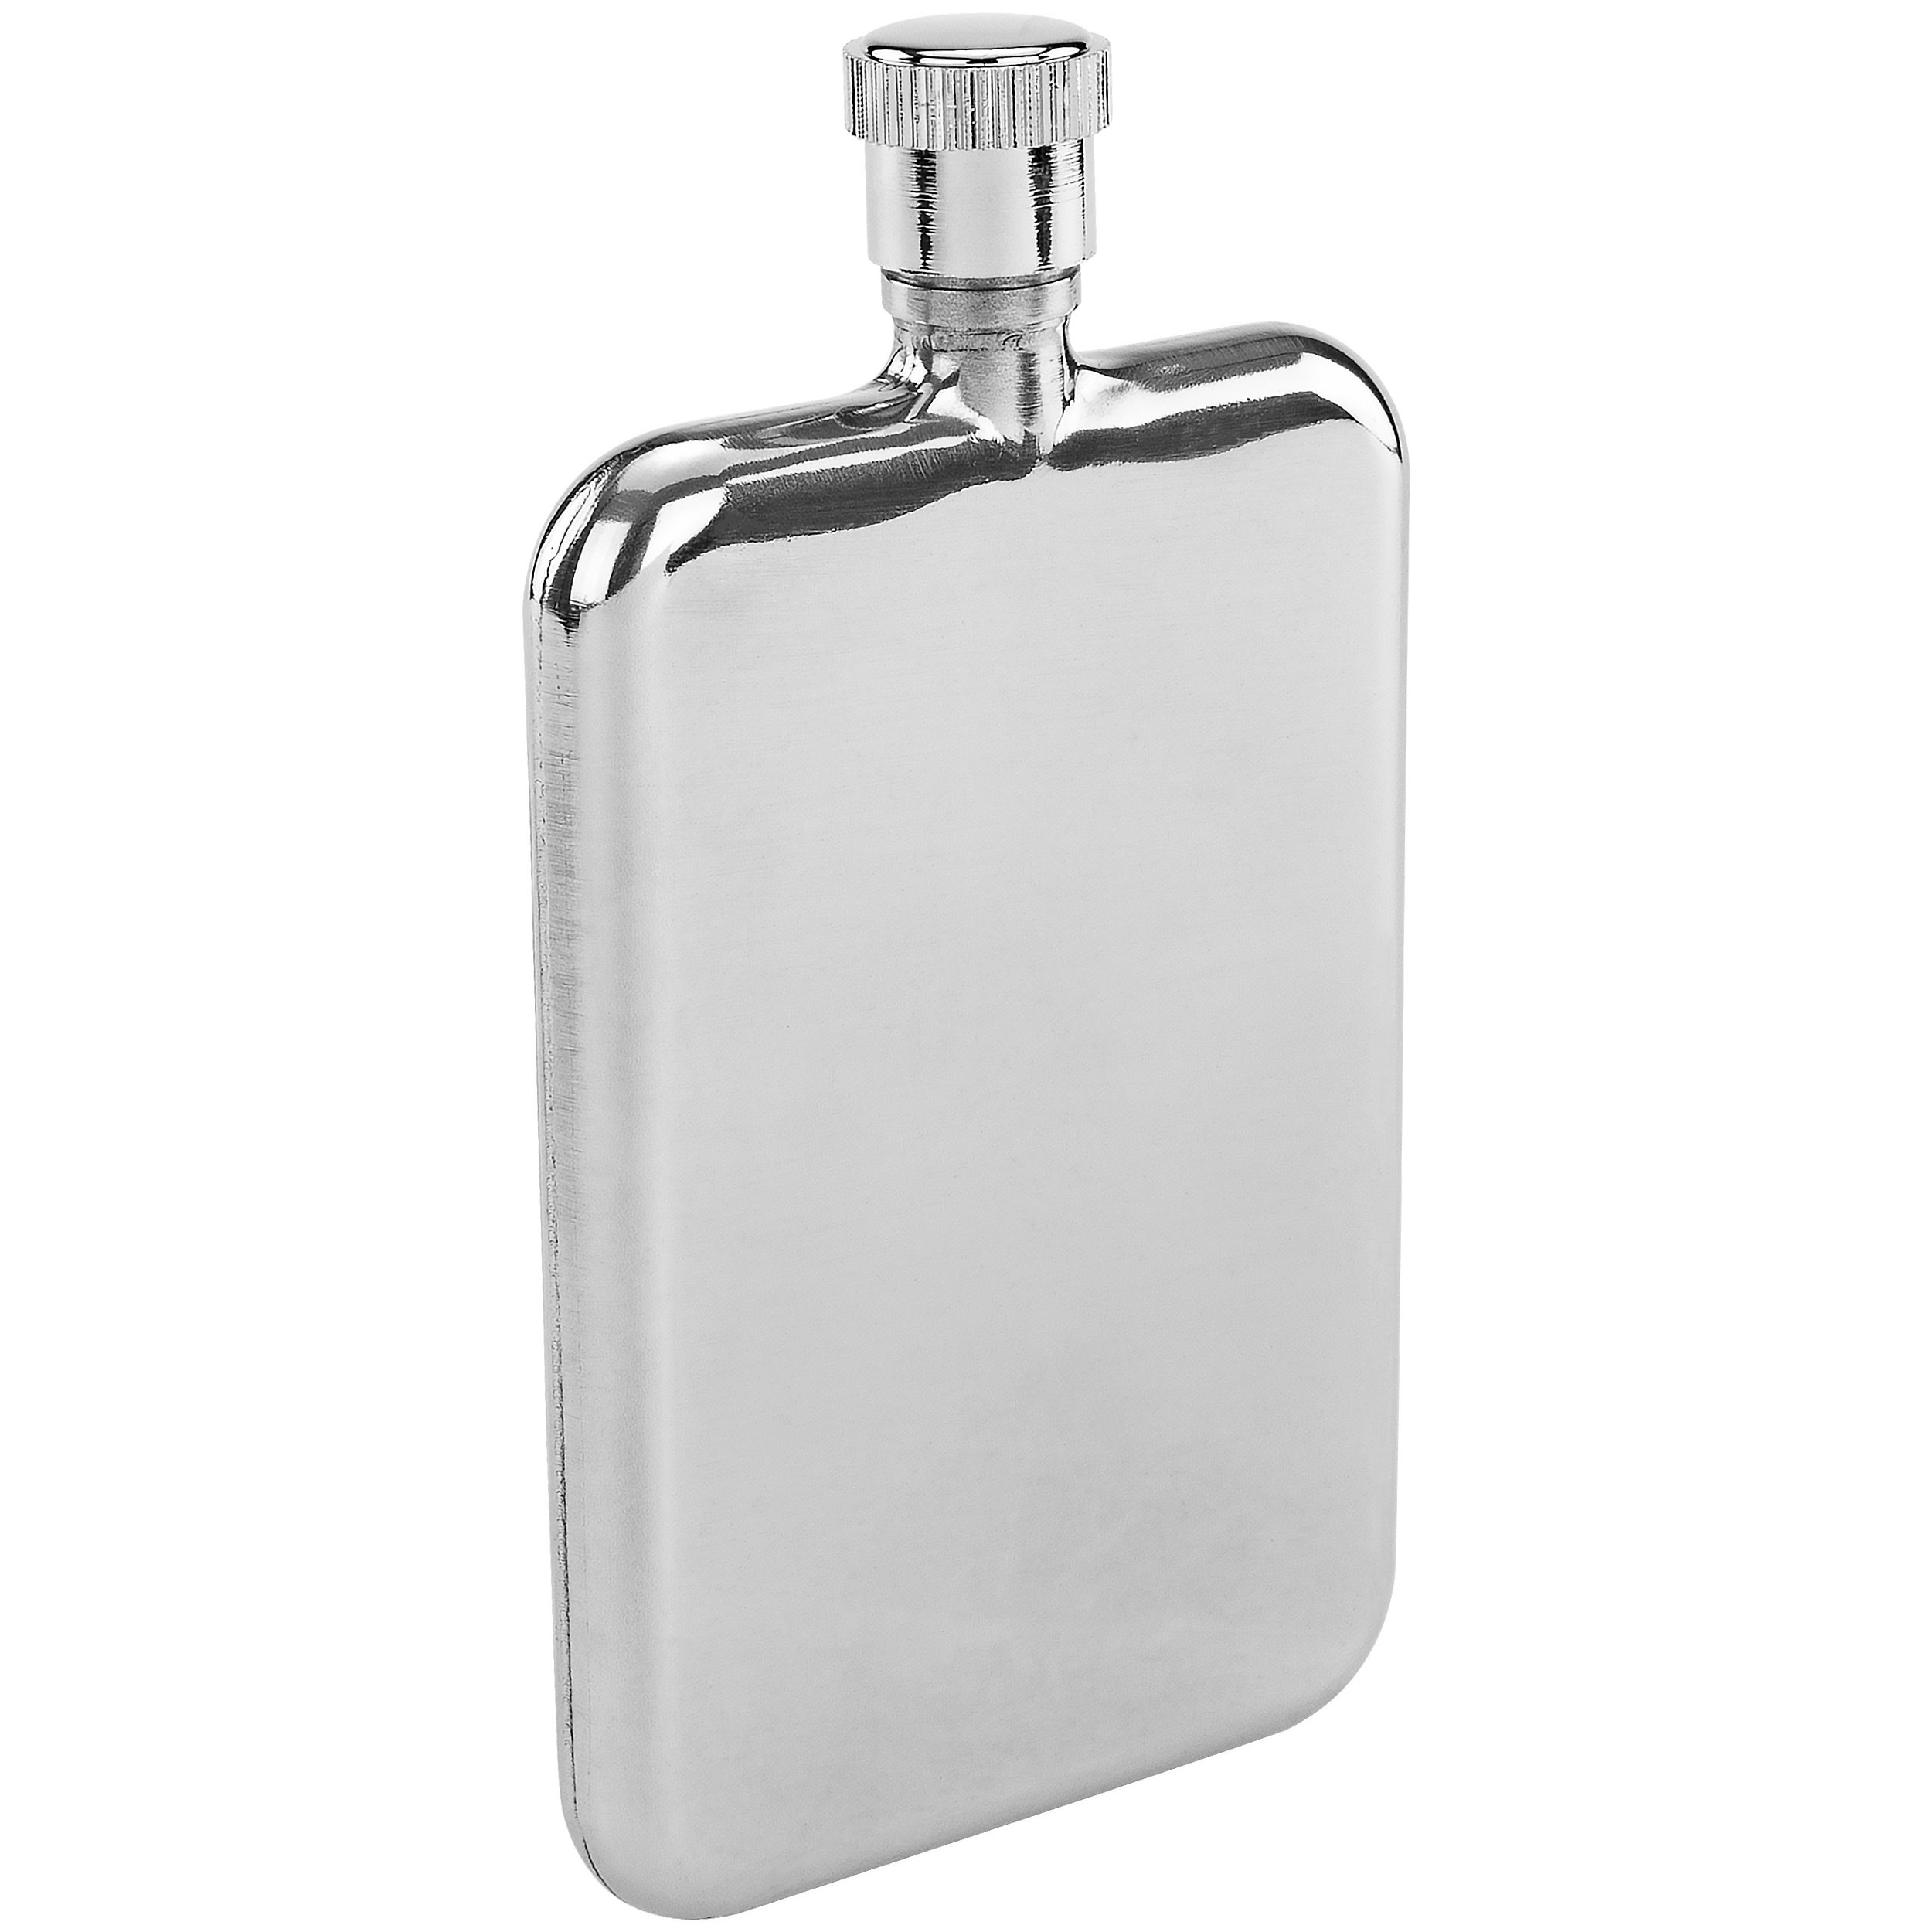 Southern Homewares SH-10174 Ultra Thin Slim Premium Stainless Steel Flask, 1.5-Ounces, Chrome, One Size, Silver